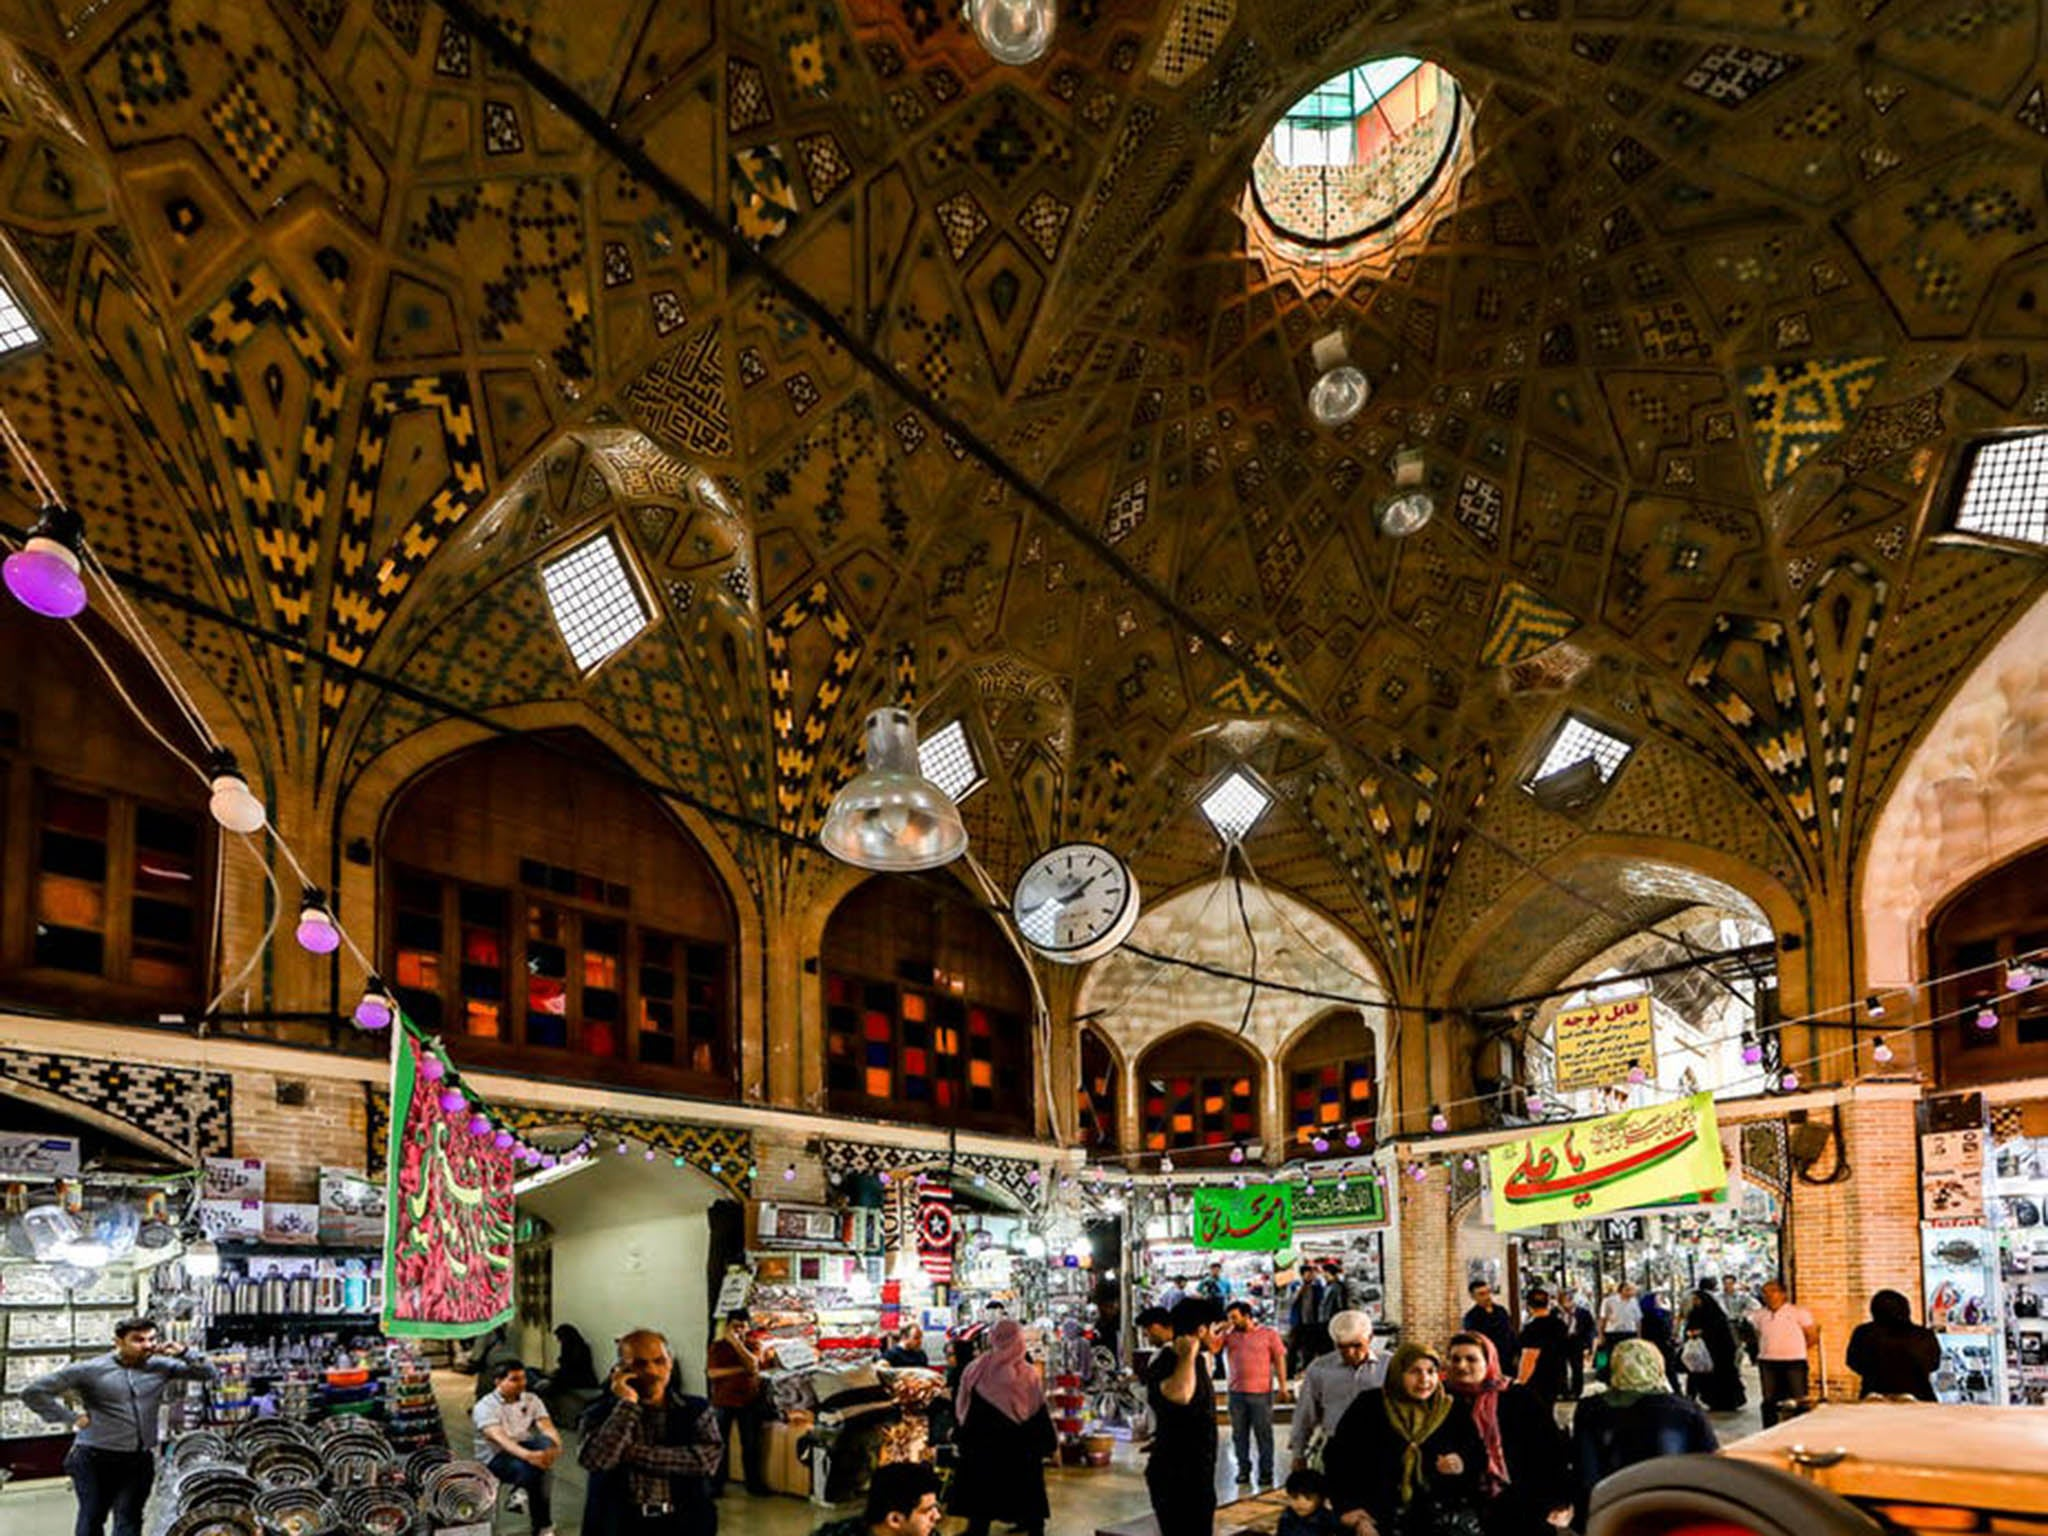 The Bazaar in the Islamic City: Design, Culture, and History